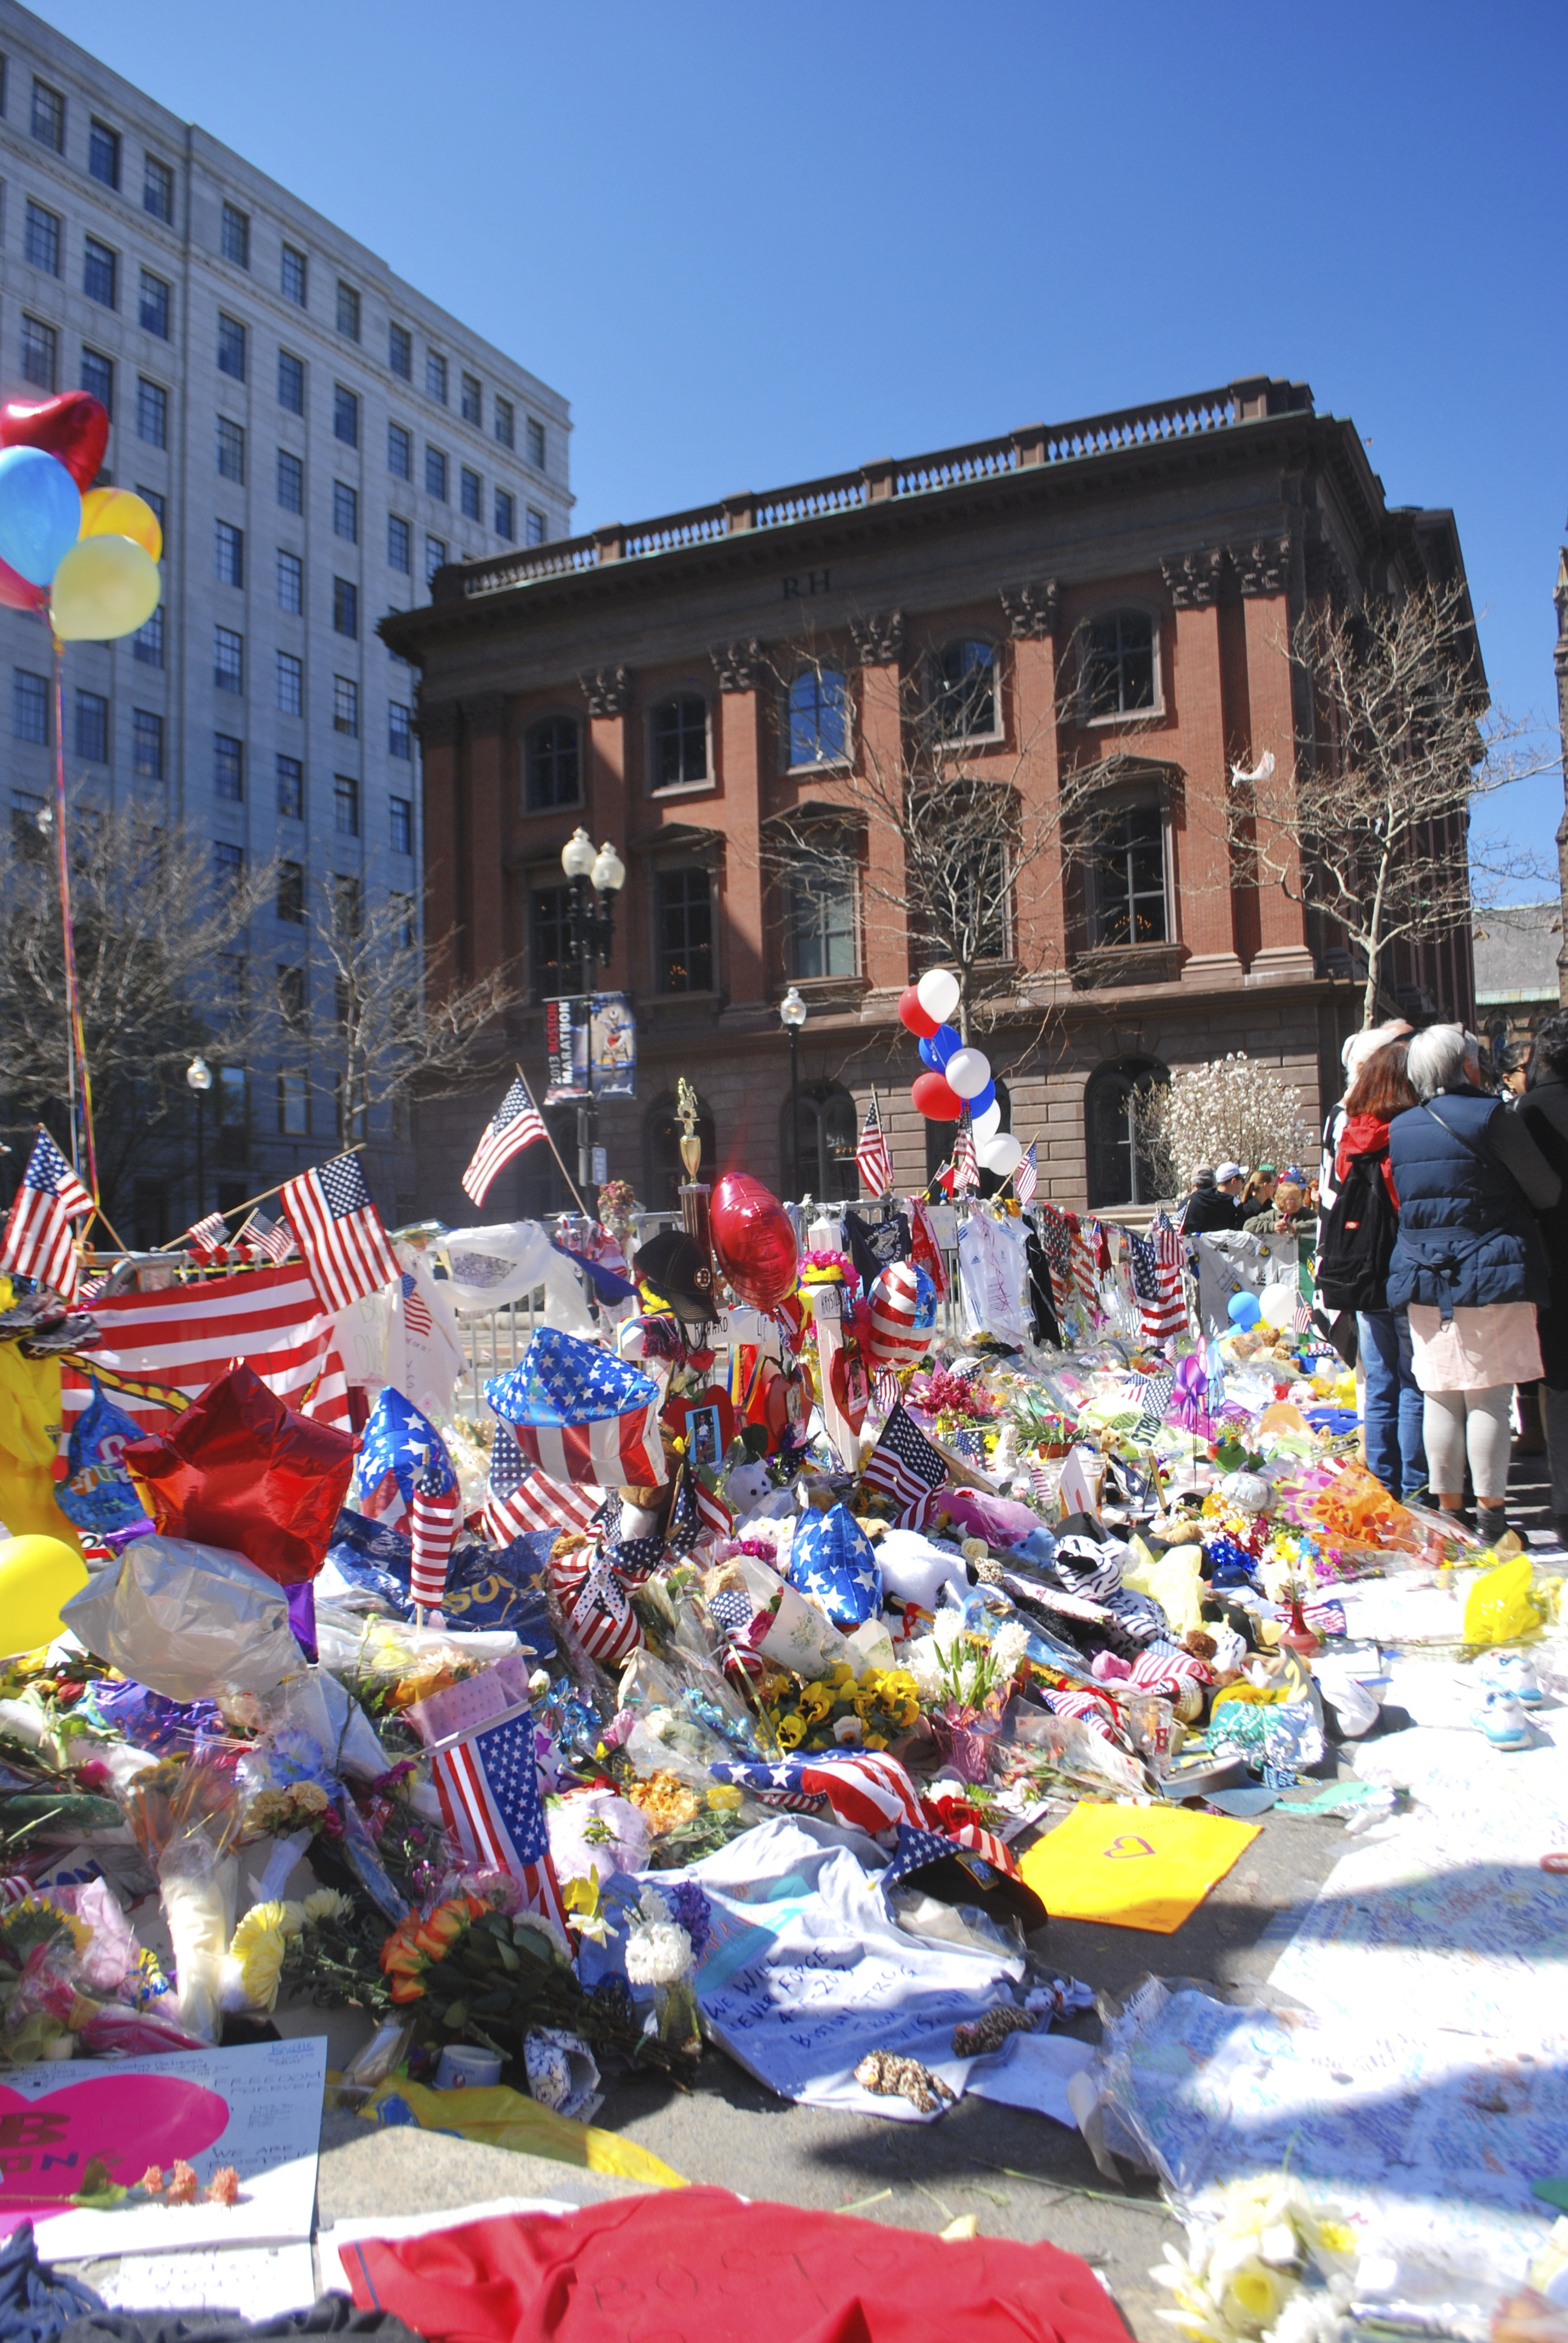 Memorial to survivors and victims of the Boston Marathon